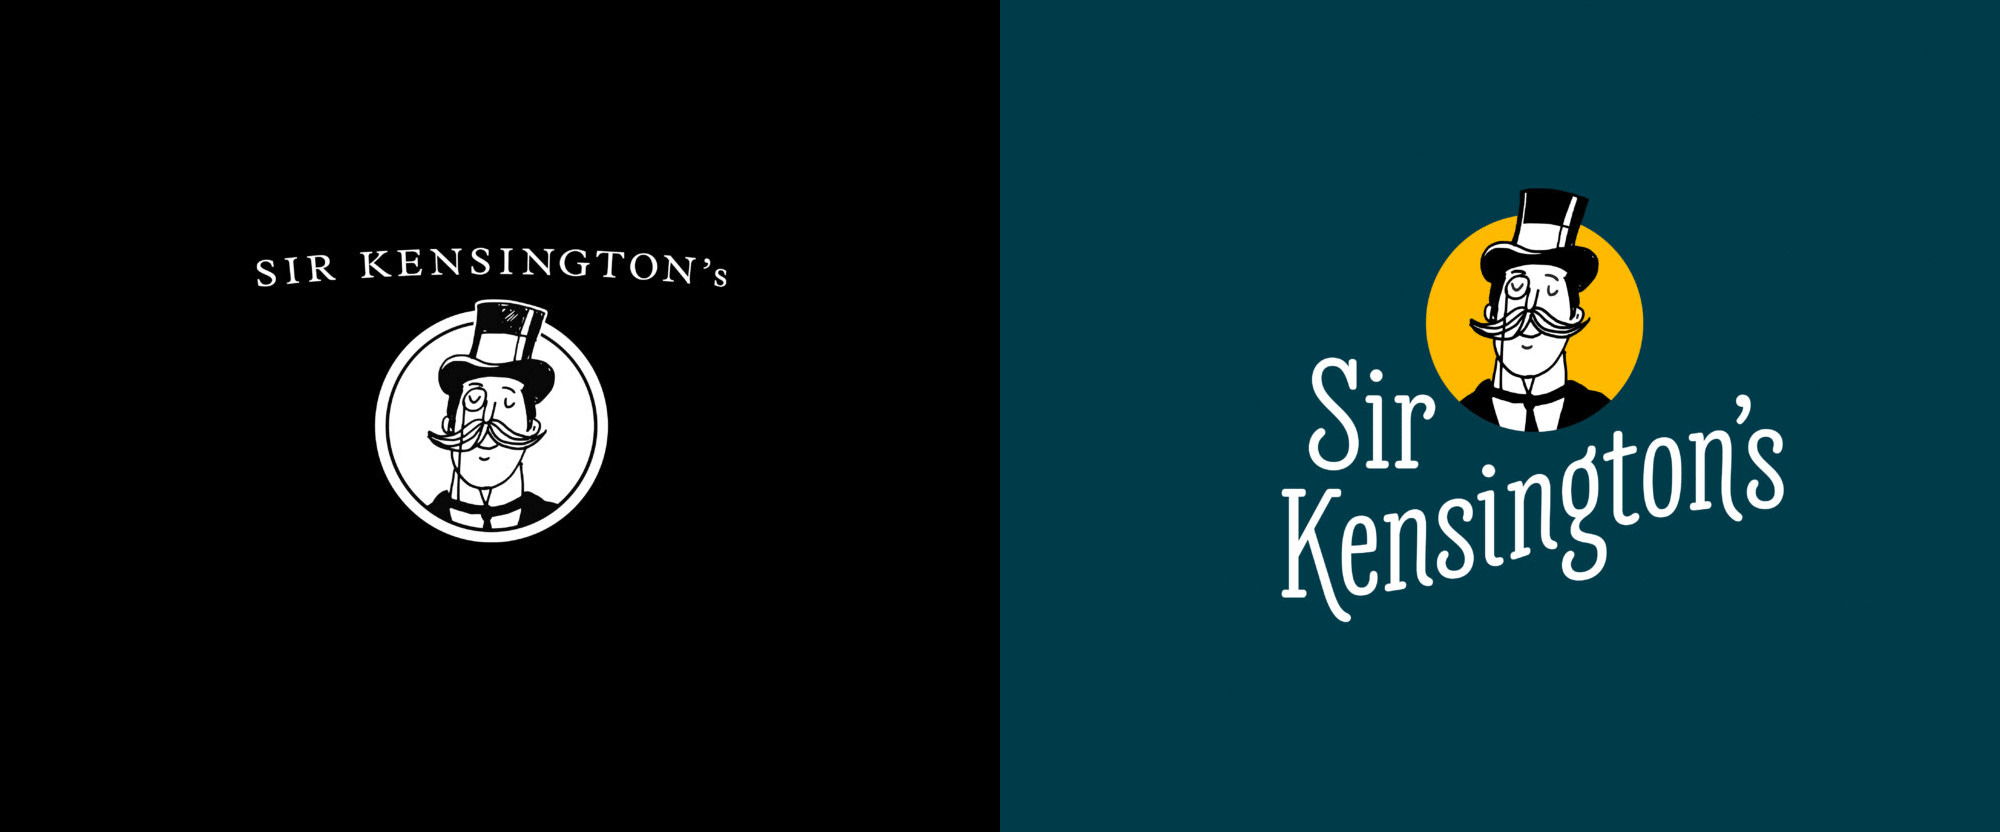 New Logo and Packaging for Sir Kensington's done In-house